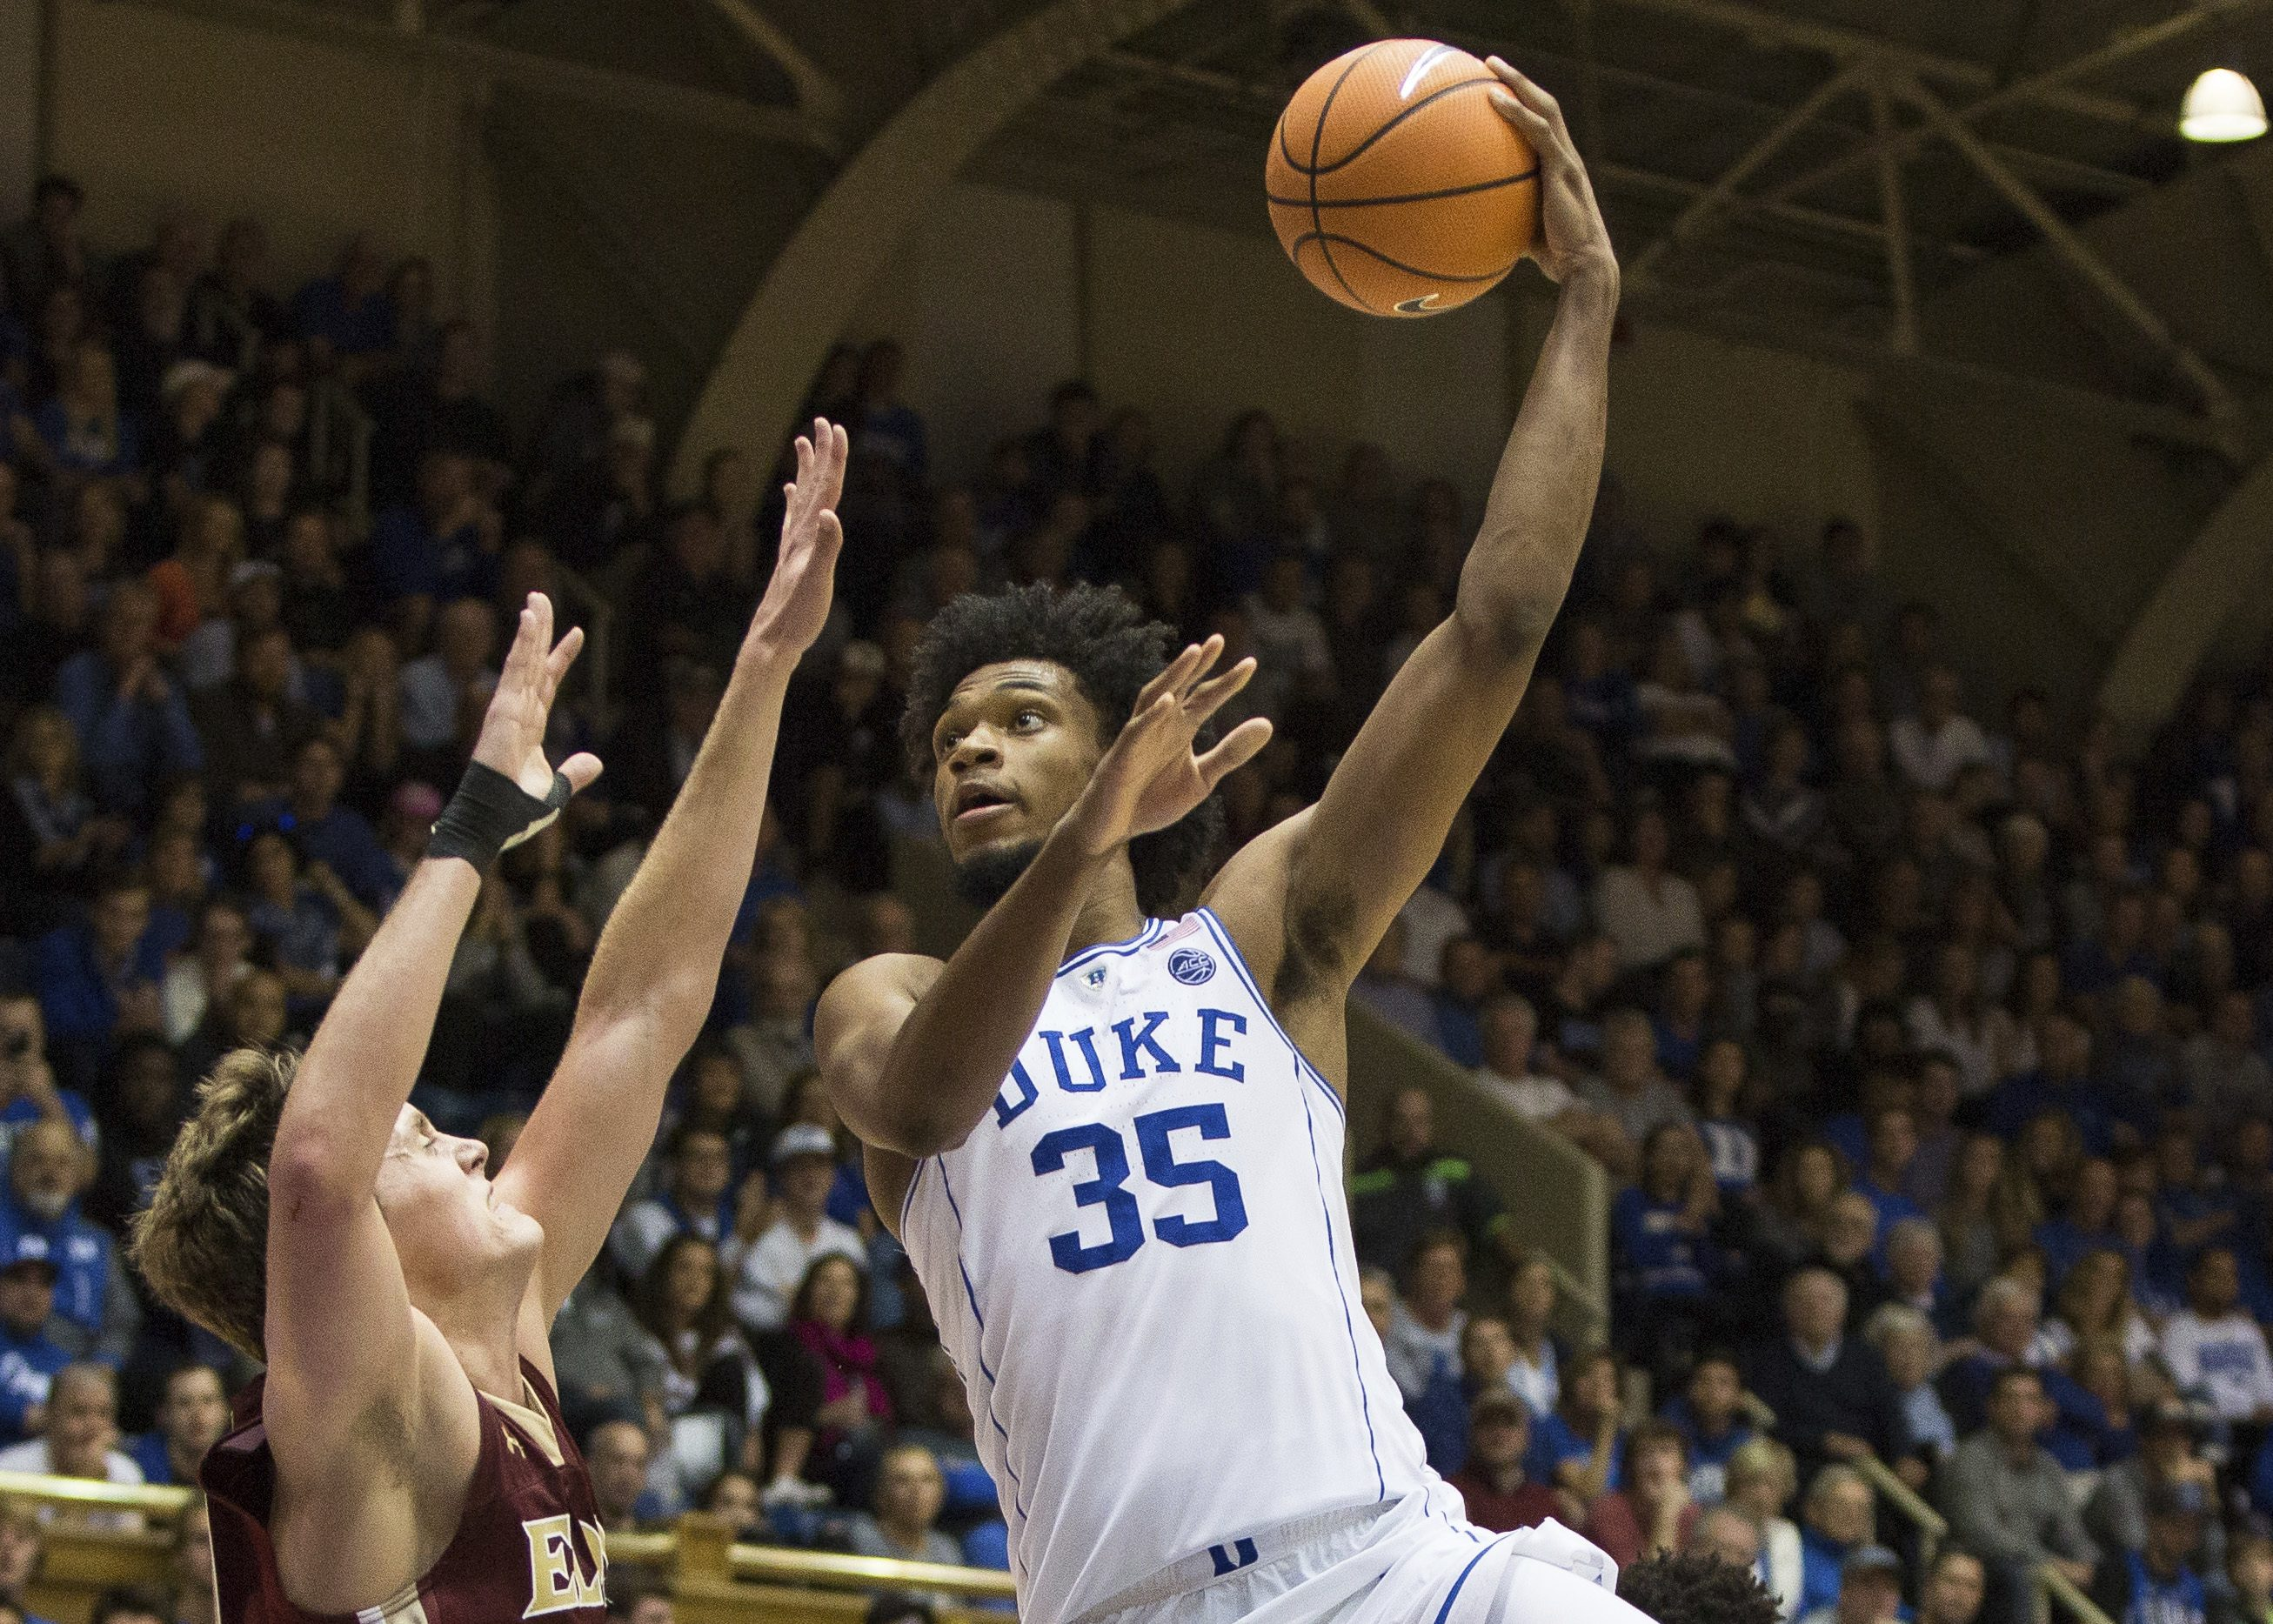 Duke's Marvin Bagley III (35) attempts a shot over Elon's Tyler Seibring, left, during the second half of an NCAA college basketball game in Durham, N.C., Friday, Nov. 10, 2017. Duke defeated Elon 97-68. (AP Photo/Ben McKeown)